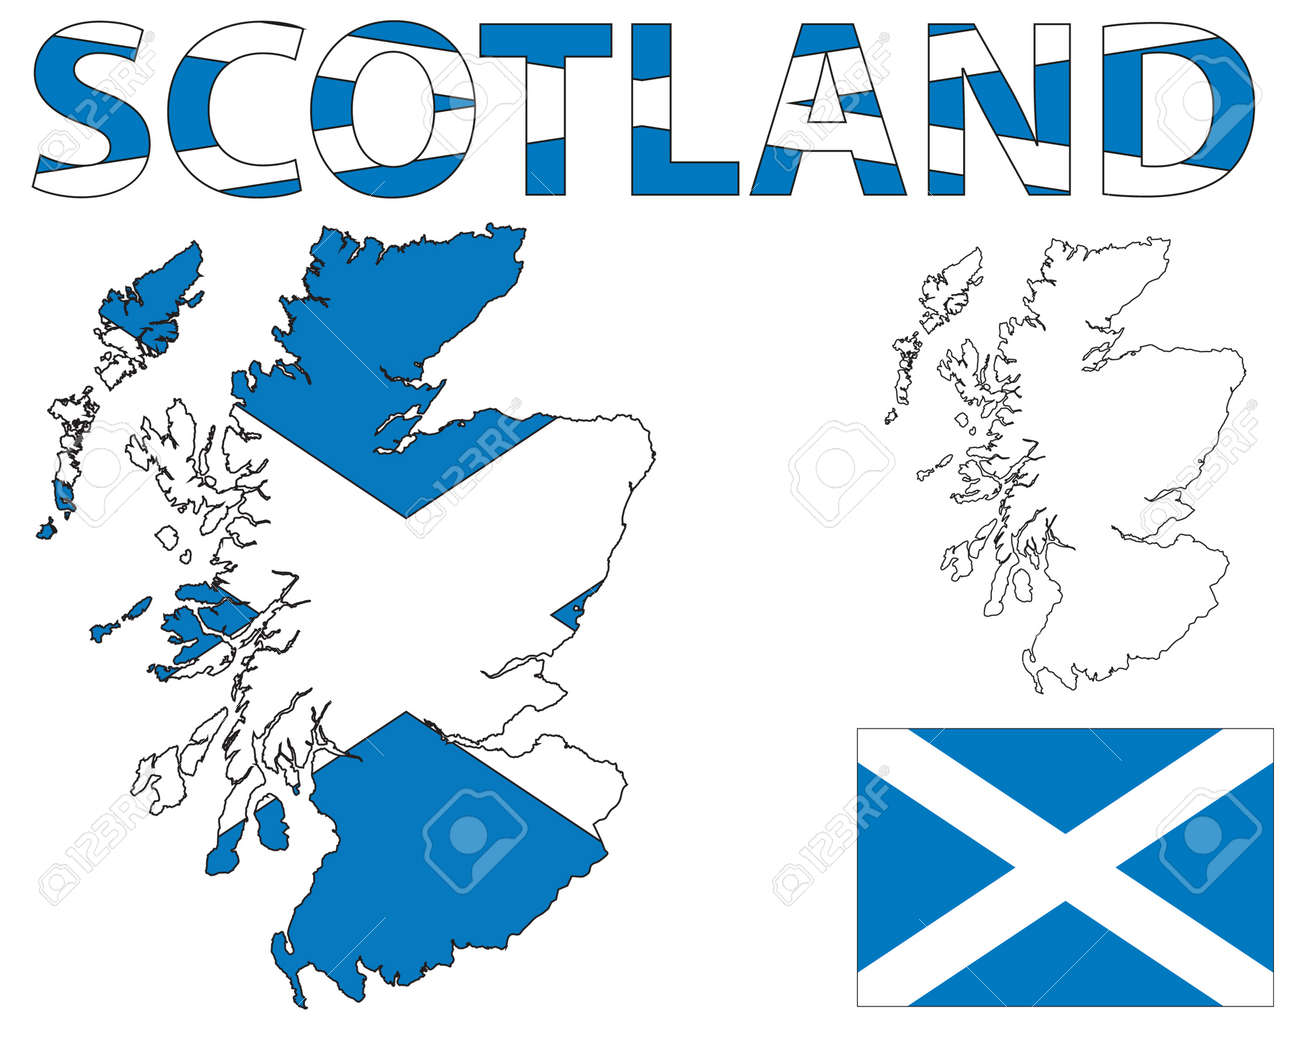 Outline map of Scotland filled with Scottish flag on scotland x france, scotland map outline, island of islay scotland map, scotland map google, scotland county map, scotland shortbread recipe, scotland beach, scotland name map, scotland community, scotland on map, scotland map large, scotland lion, scotland travel map, silhouette scotland map, scotland football map, scotland tattoo, scotland road map,